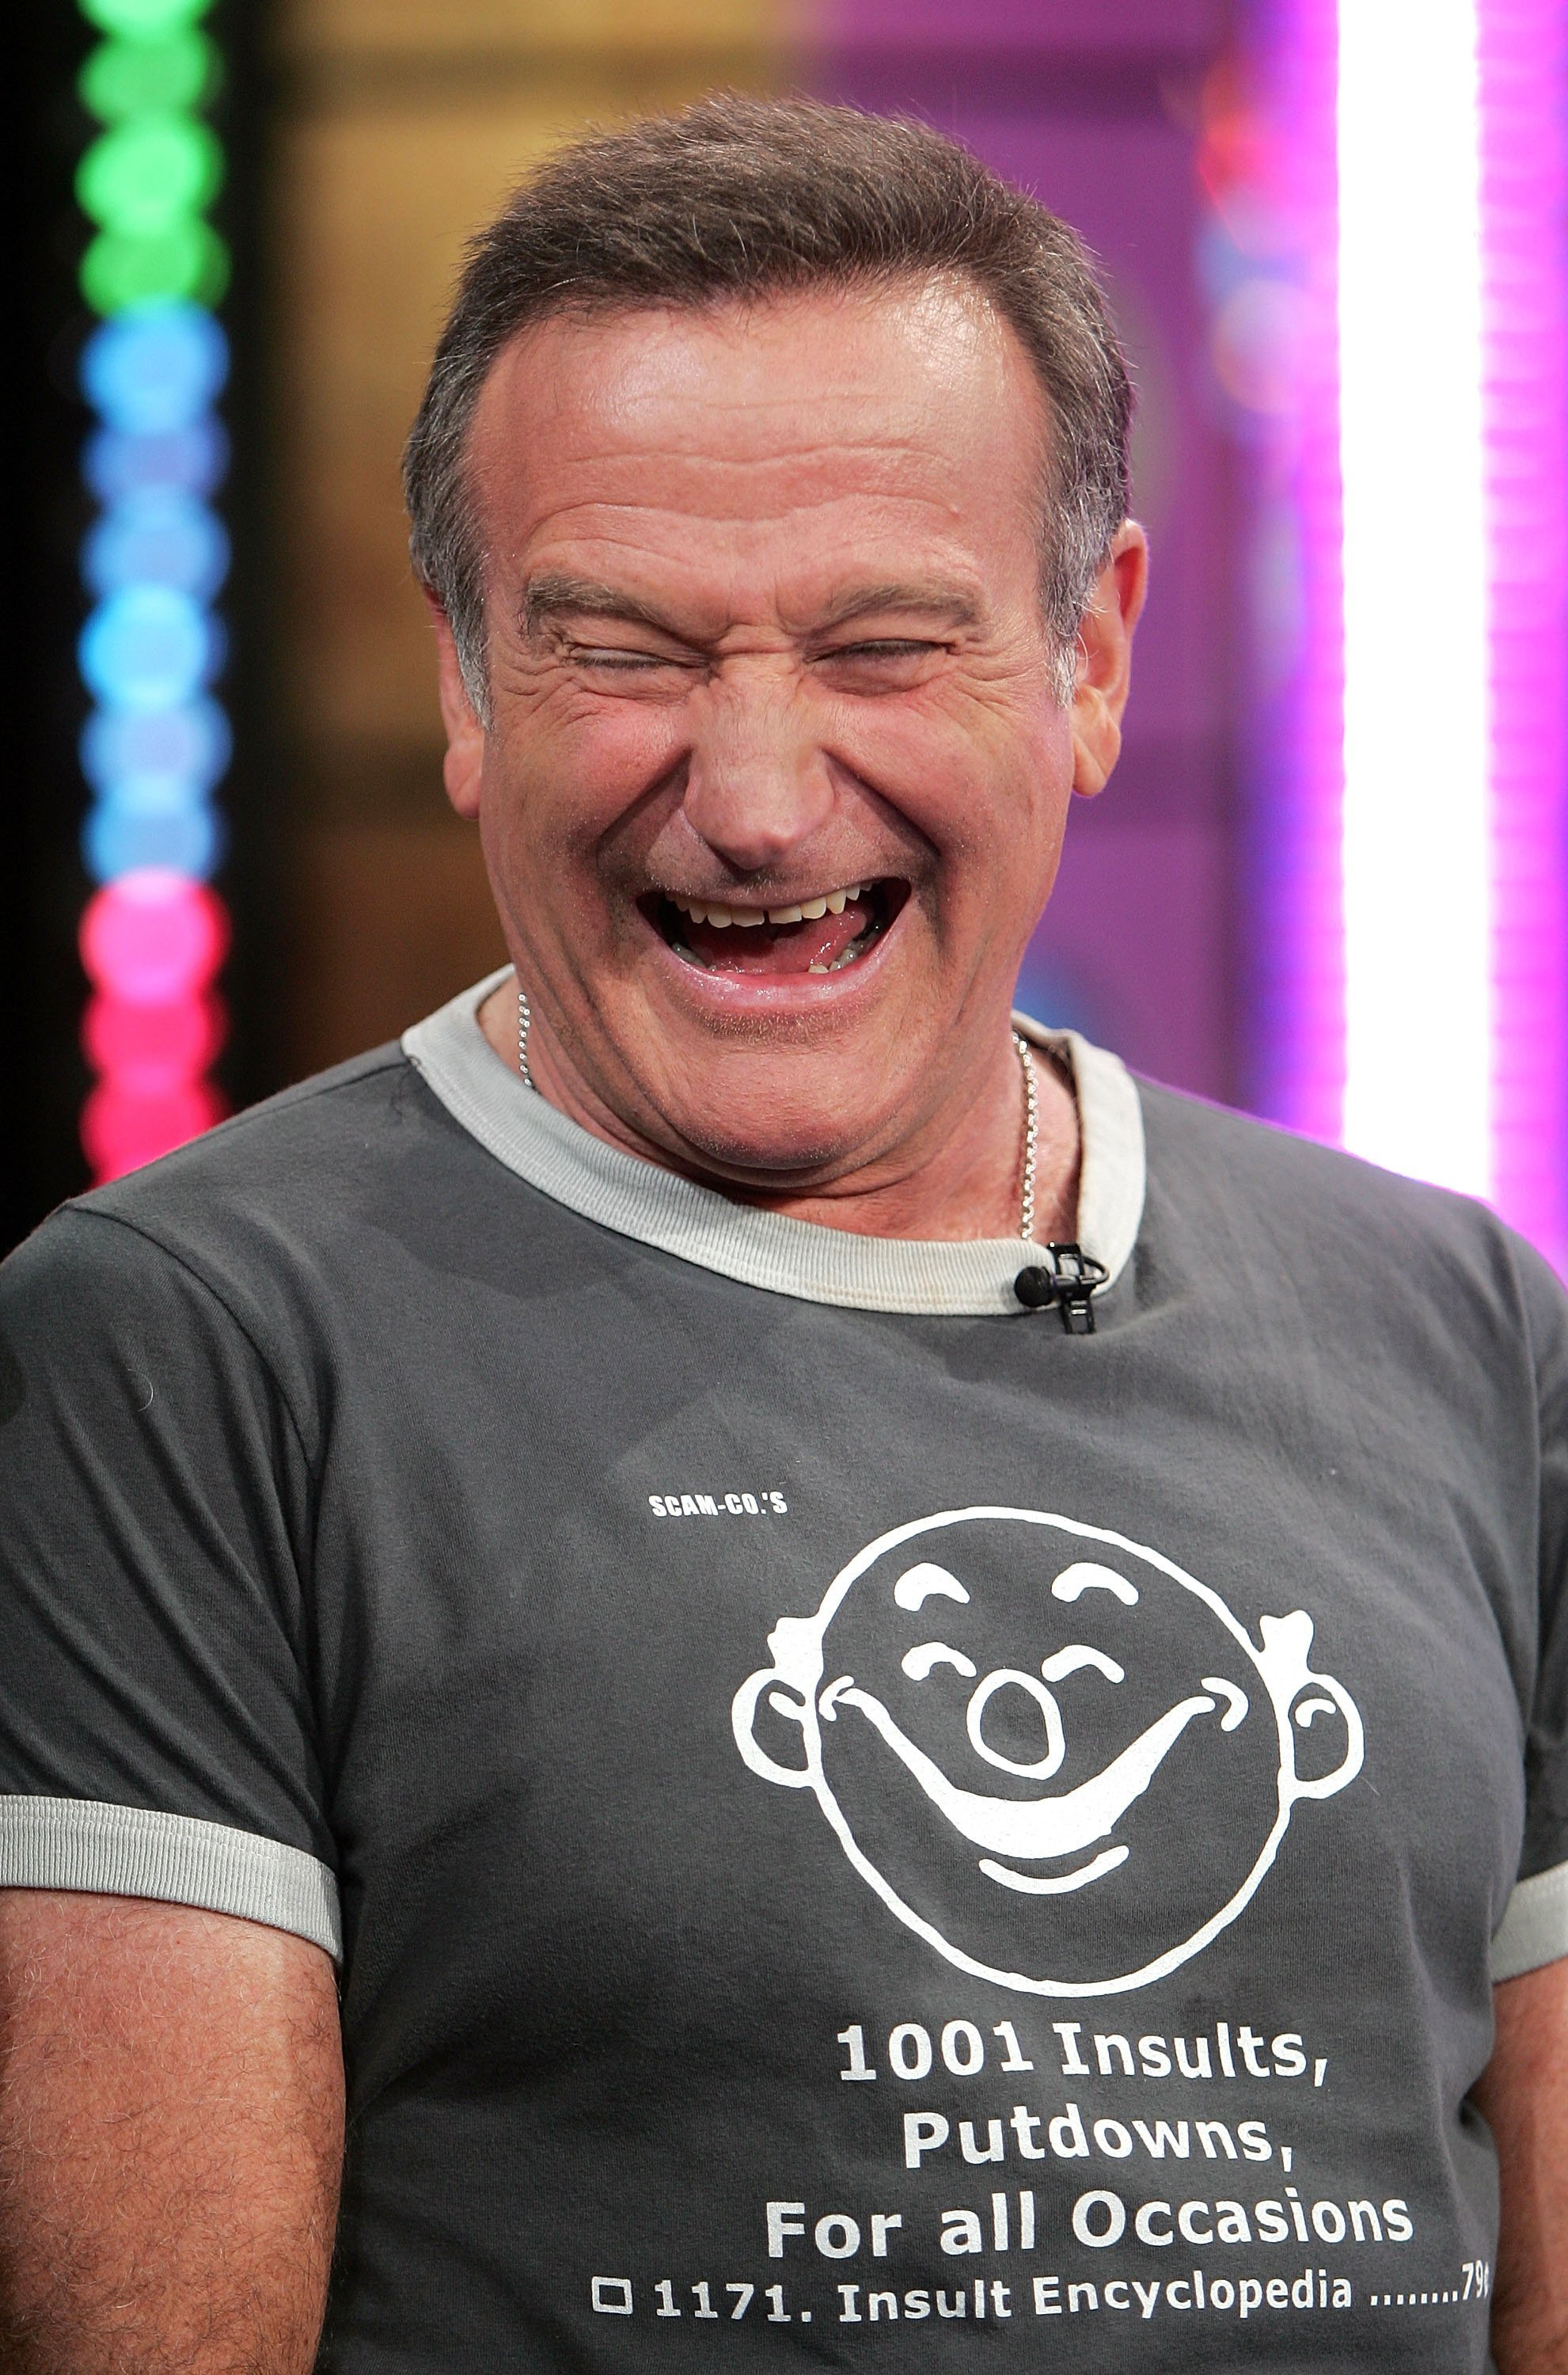 Image Credits: Getty Images / Scott Gries | Actor Robin Williams appears onstage during MTV's Total Request Live at the MTV Times Square Studios on November 14, 2006 in New York City.